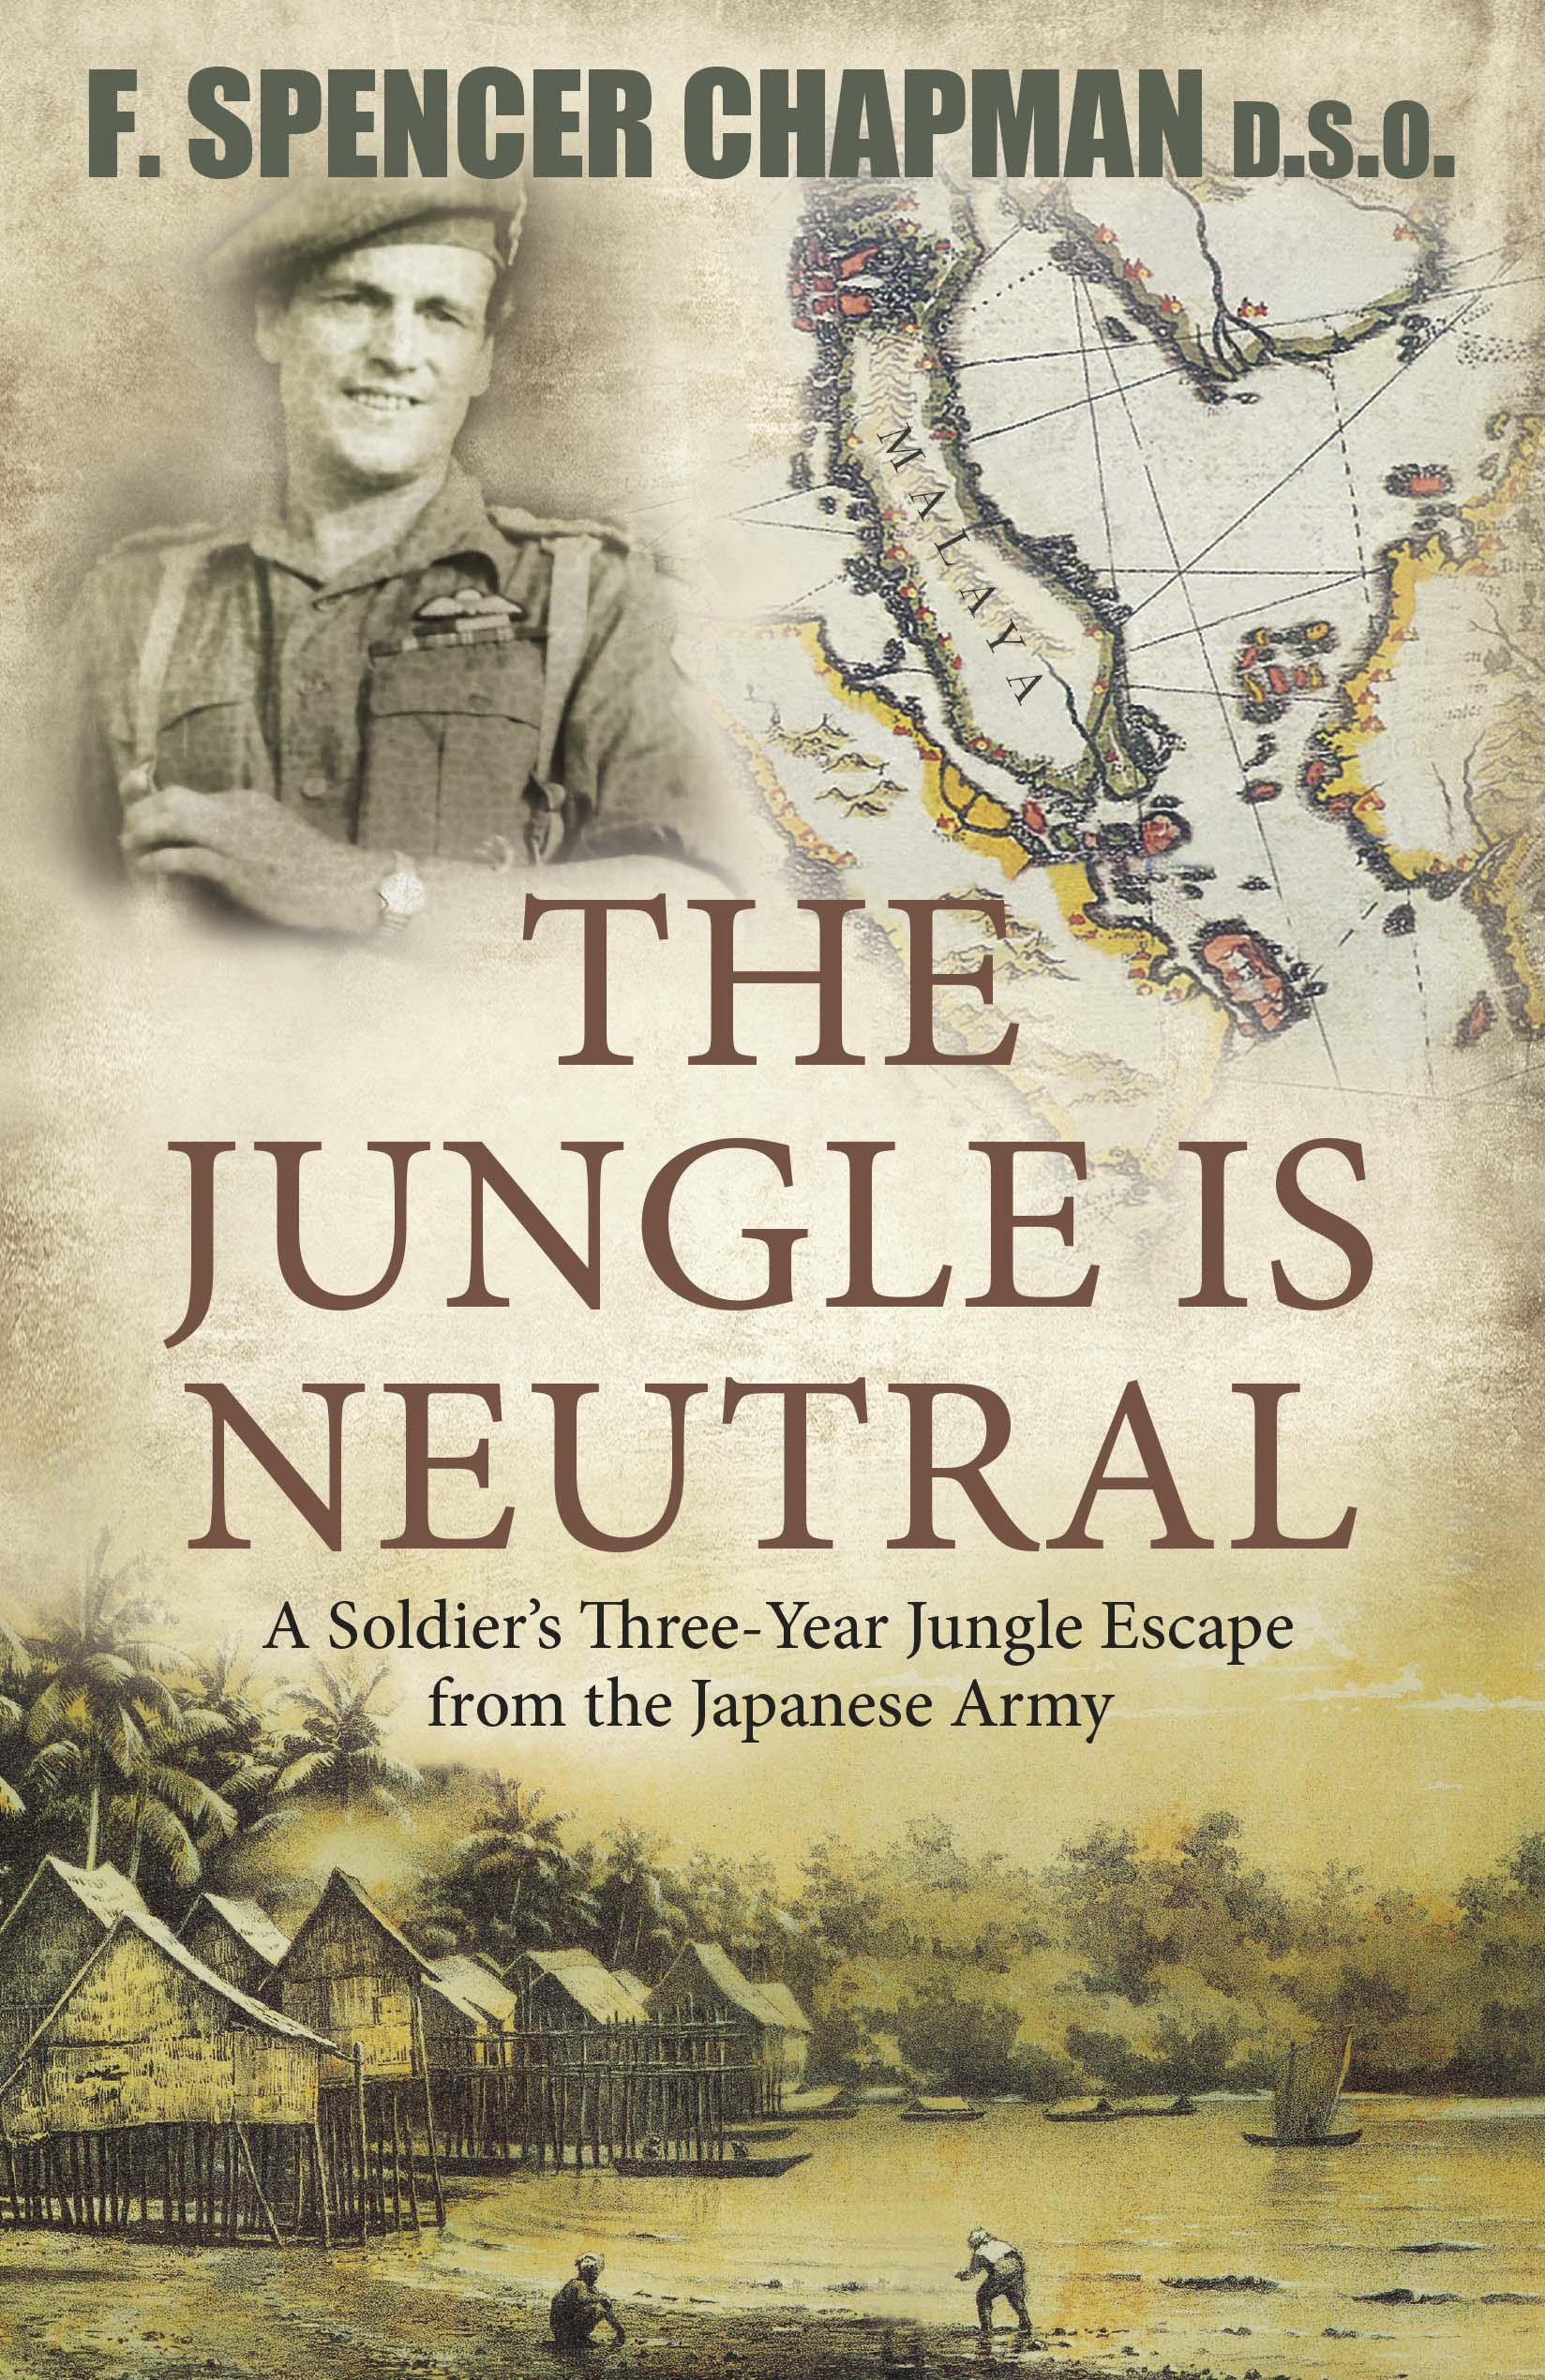 The Jungle Is Neutral: A Soldier's Three-Year Jungle Escape from the Japanese Army